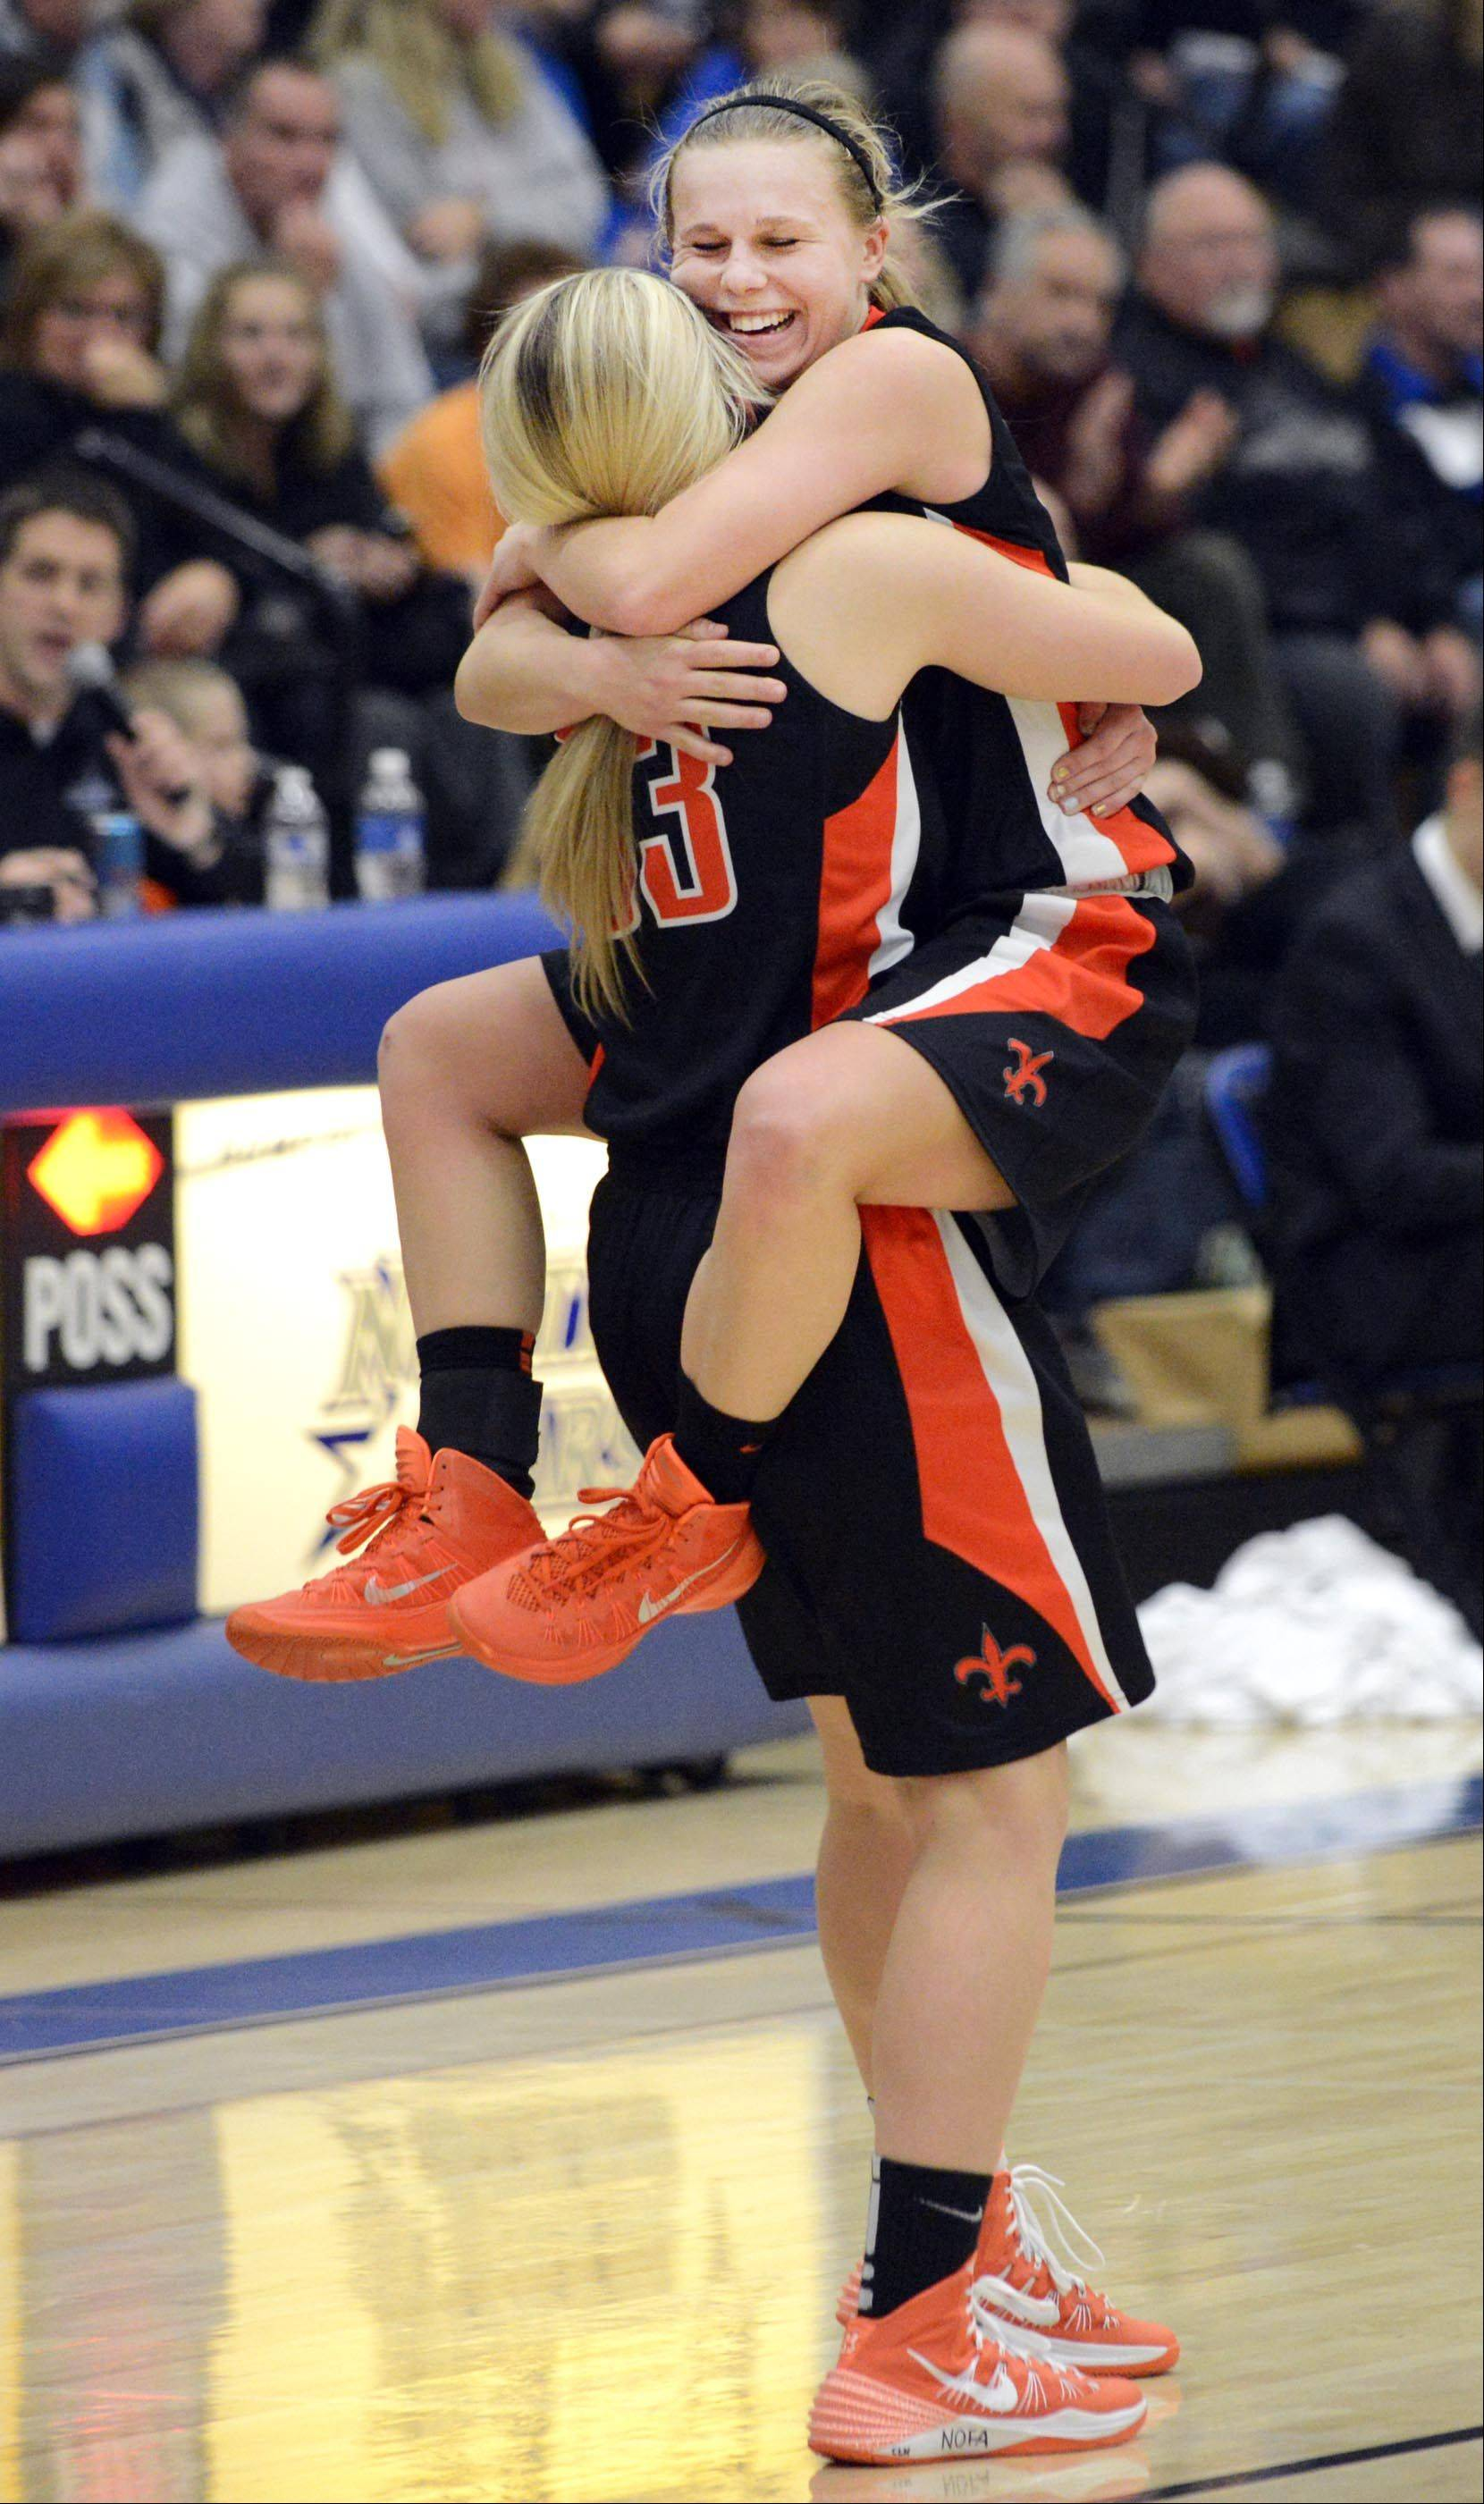 St. Charles East's Amanda Hilton celebrates with teammate Hannah Nowling after defeating St. Charles North Saturday.